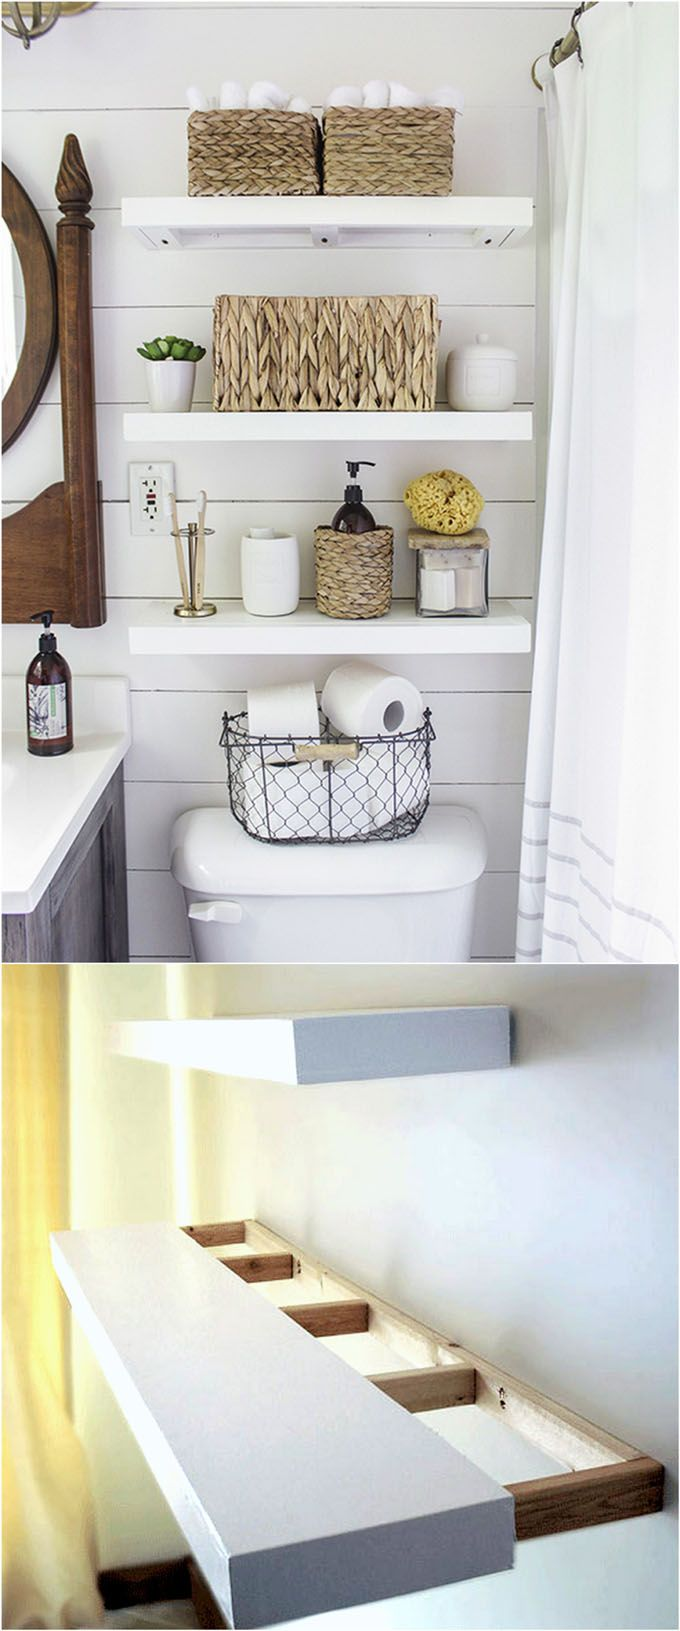 16 Easy And Stylish Diy Floating Shelves Wall Hometalk Spring Inspiration Pinterest Bathroom